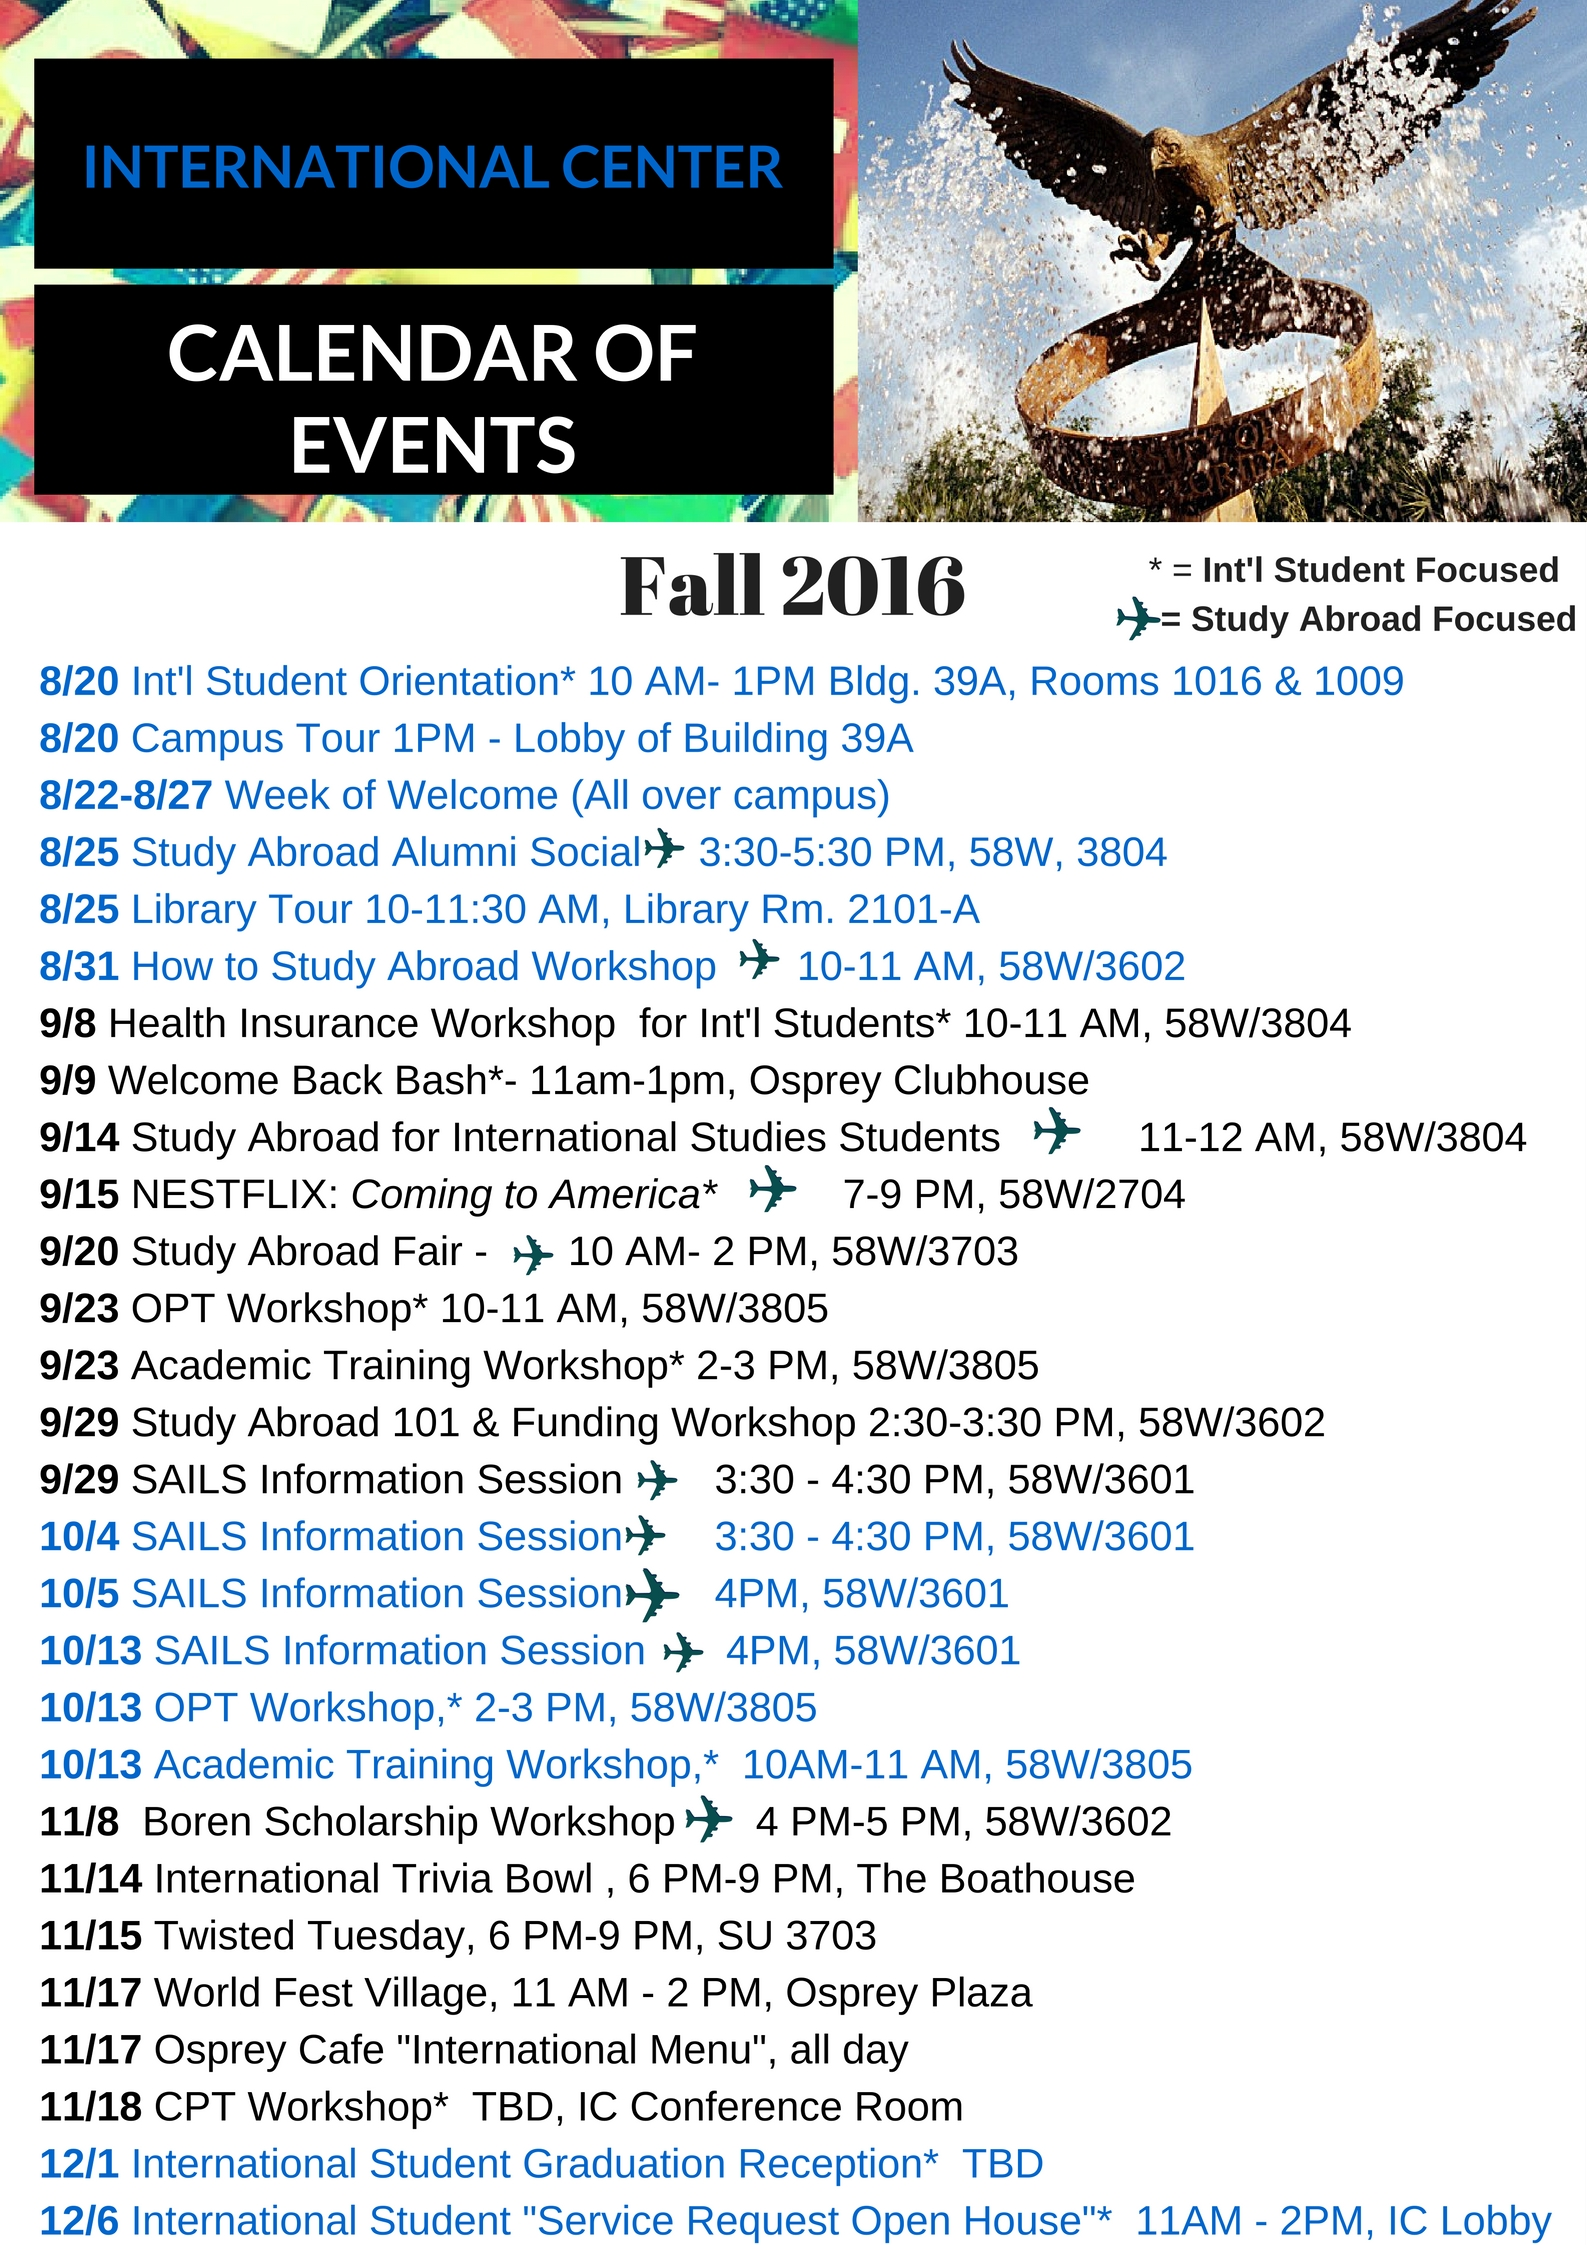 Calendar of Events Fall 2016 updated